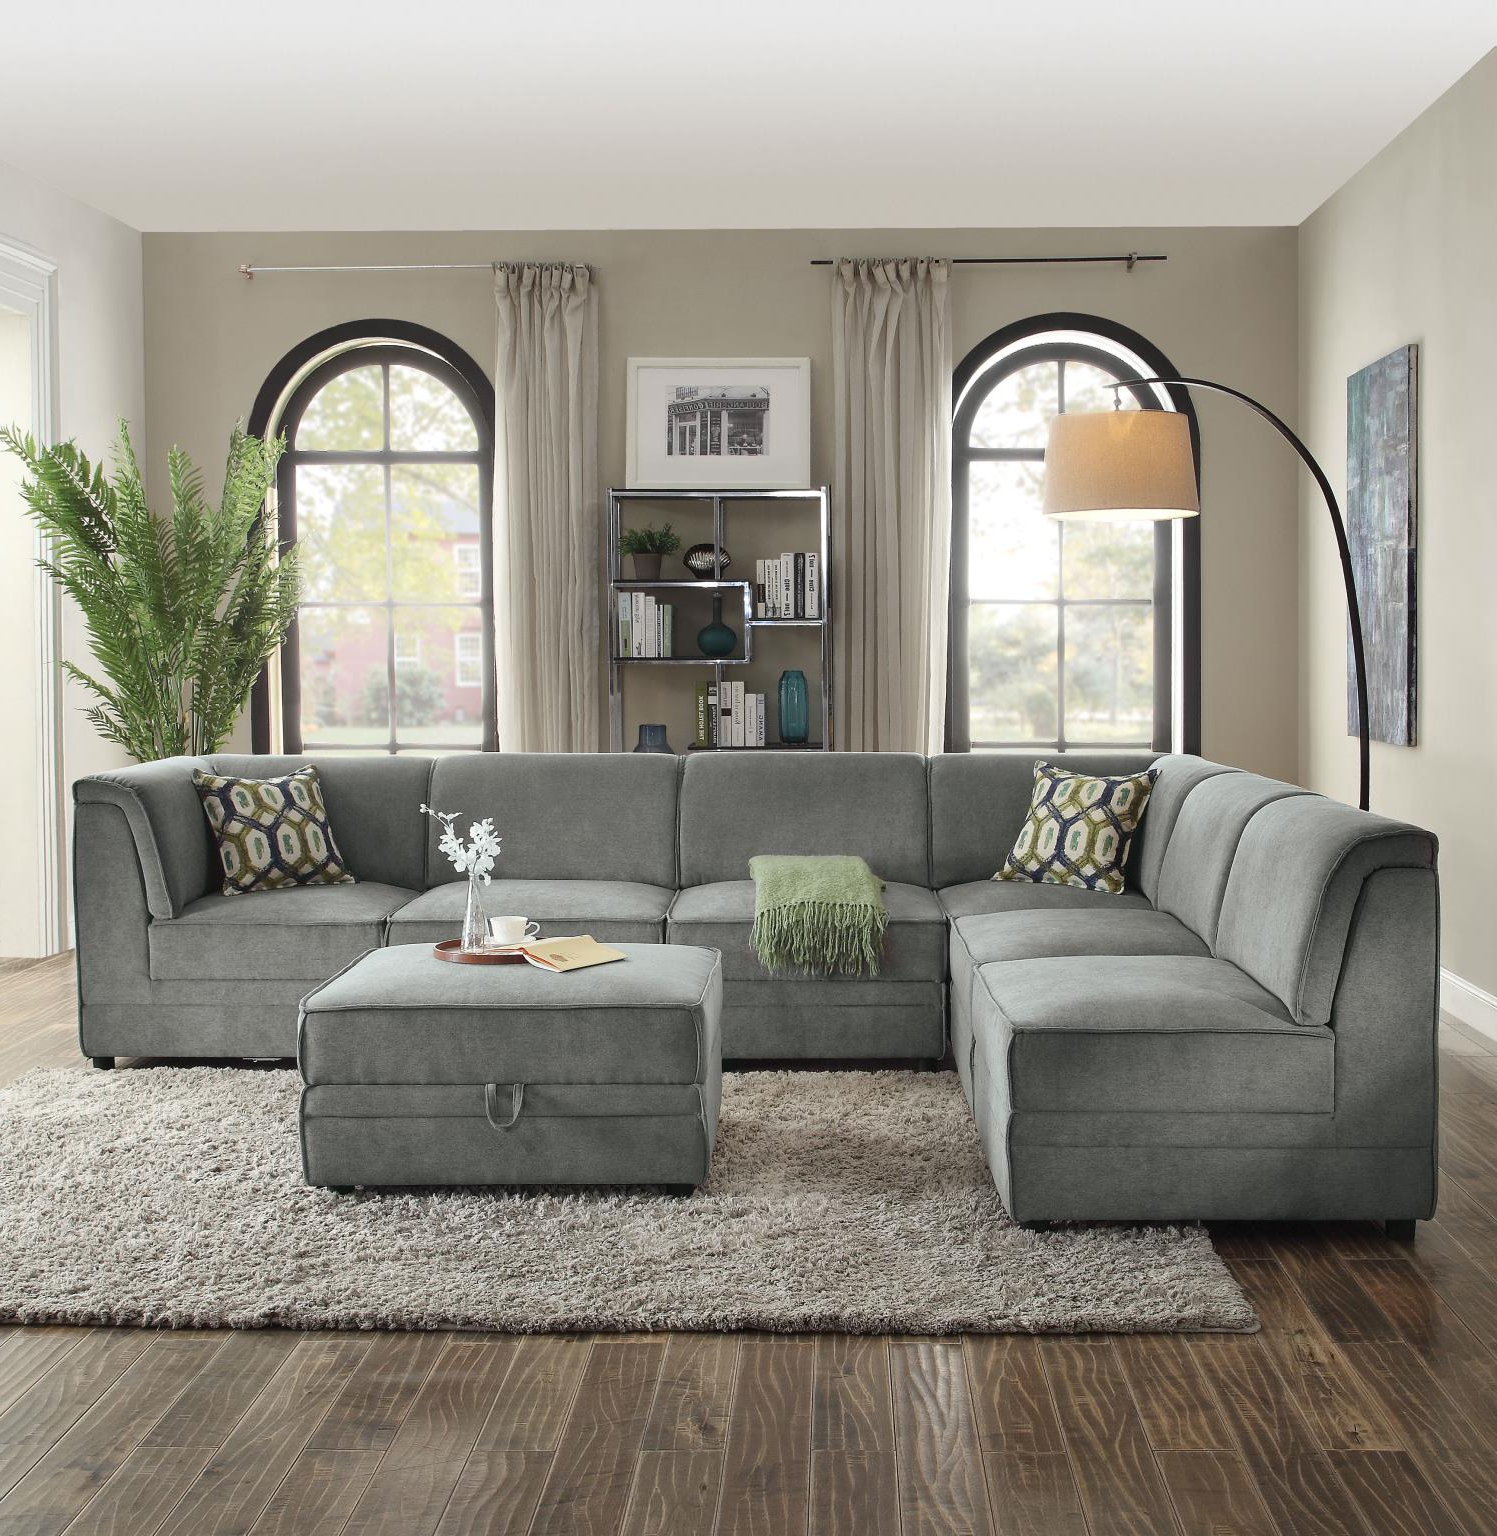 2018 Bois Ii Modular Convertible Sectional Sofa With Ottoman Intended For Paul Modular Sectional Sofas Blue (View 20 of 25)